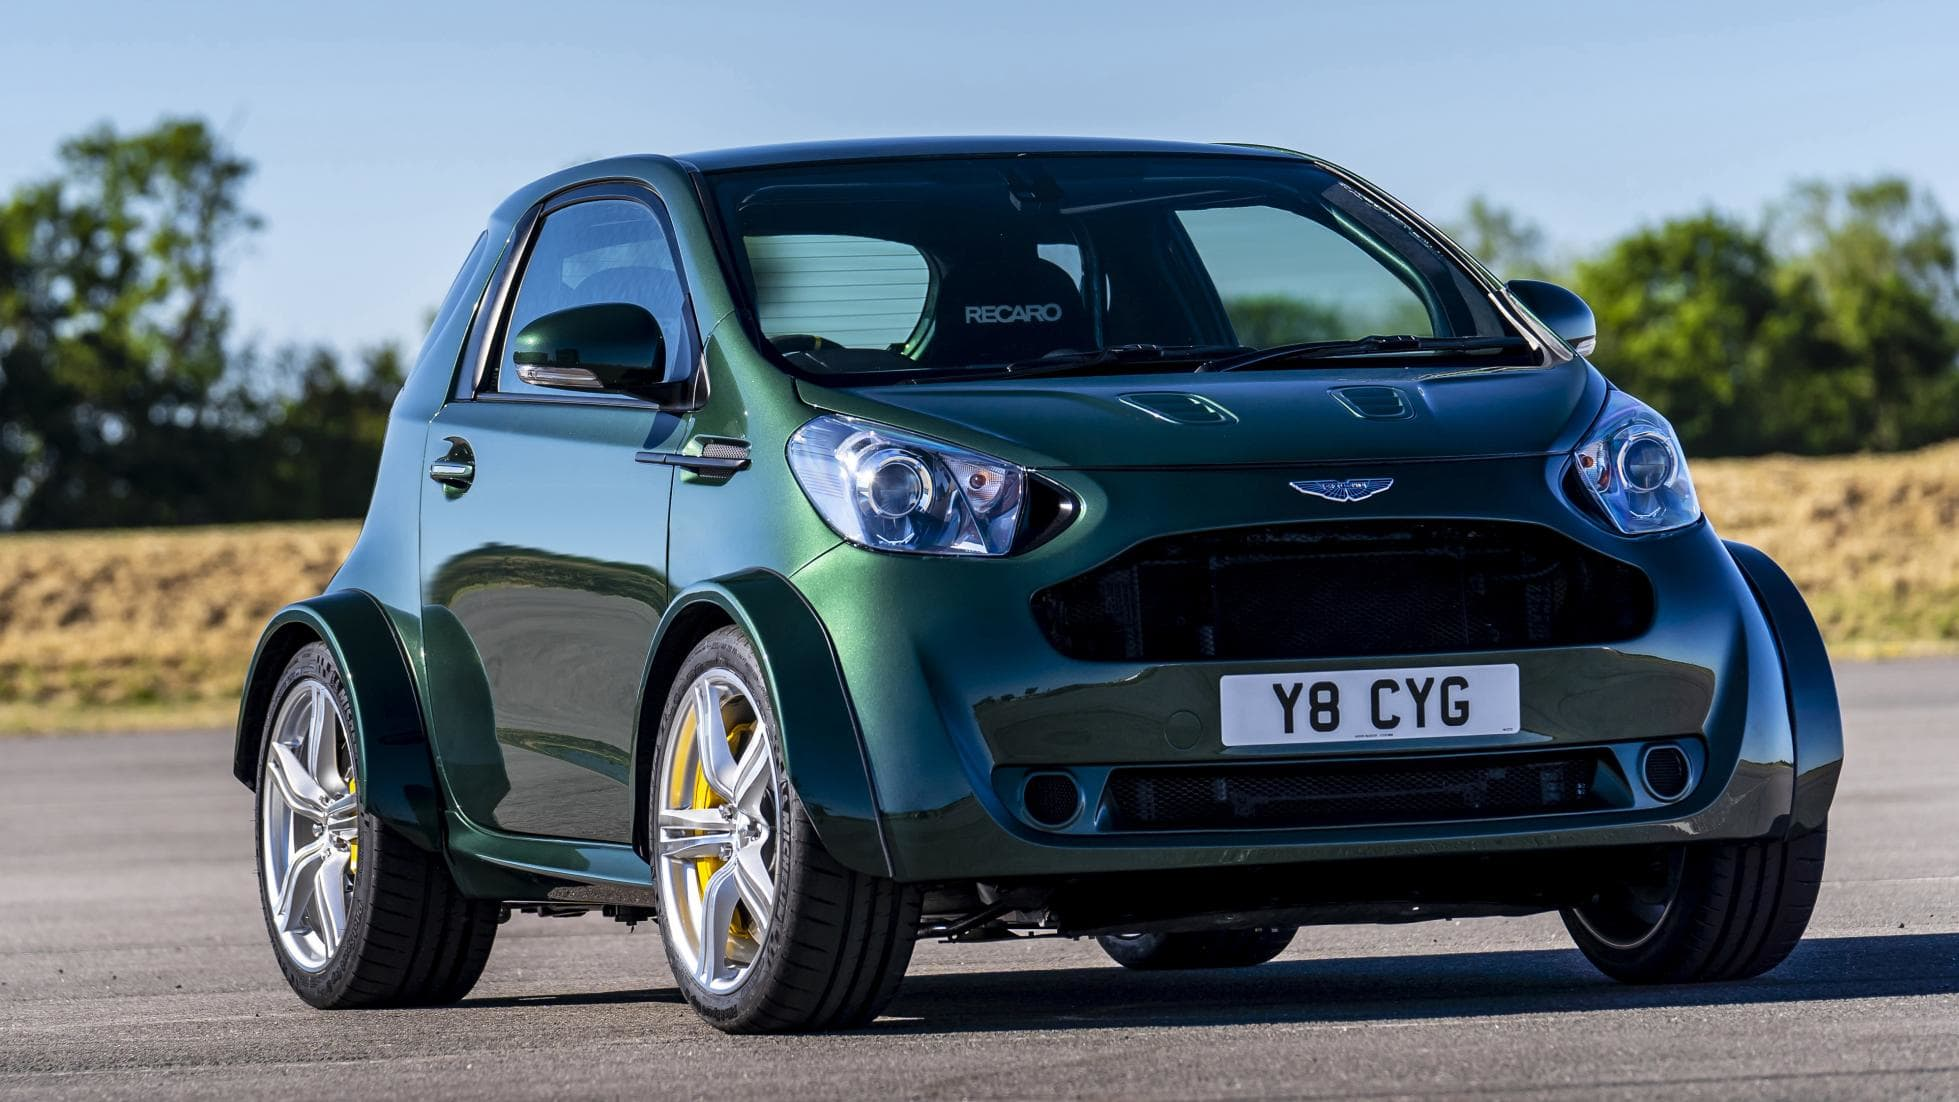 Aston Martin Puts V8 in Tiny Cygnet